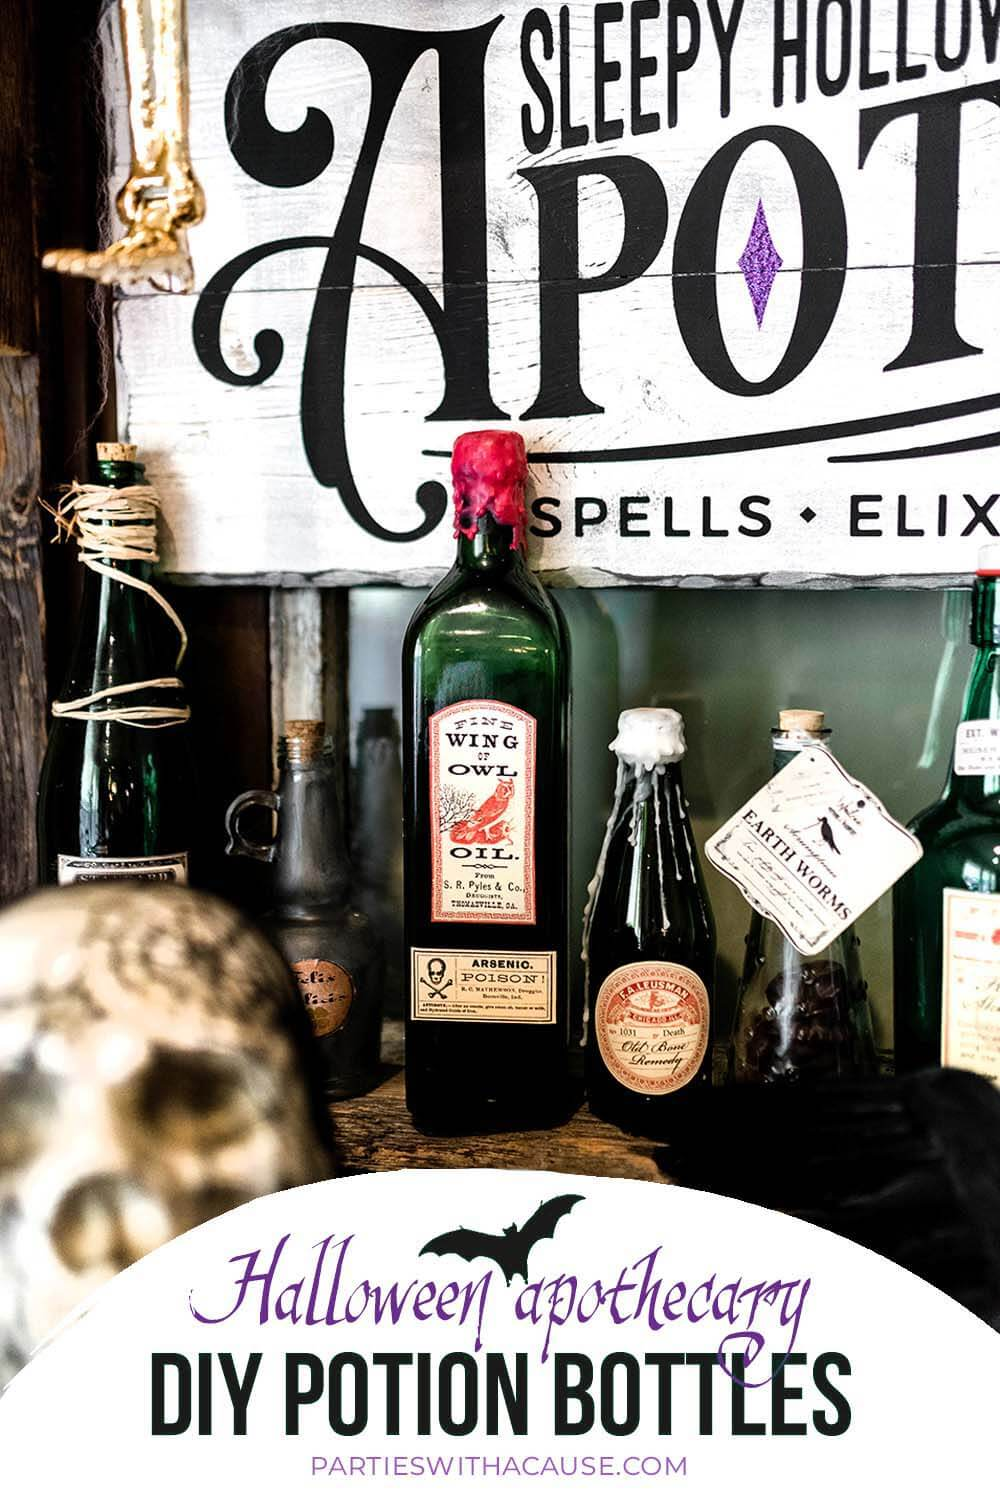 Potion bottles for Halloween apothecary by Salt Lake Party Stylist